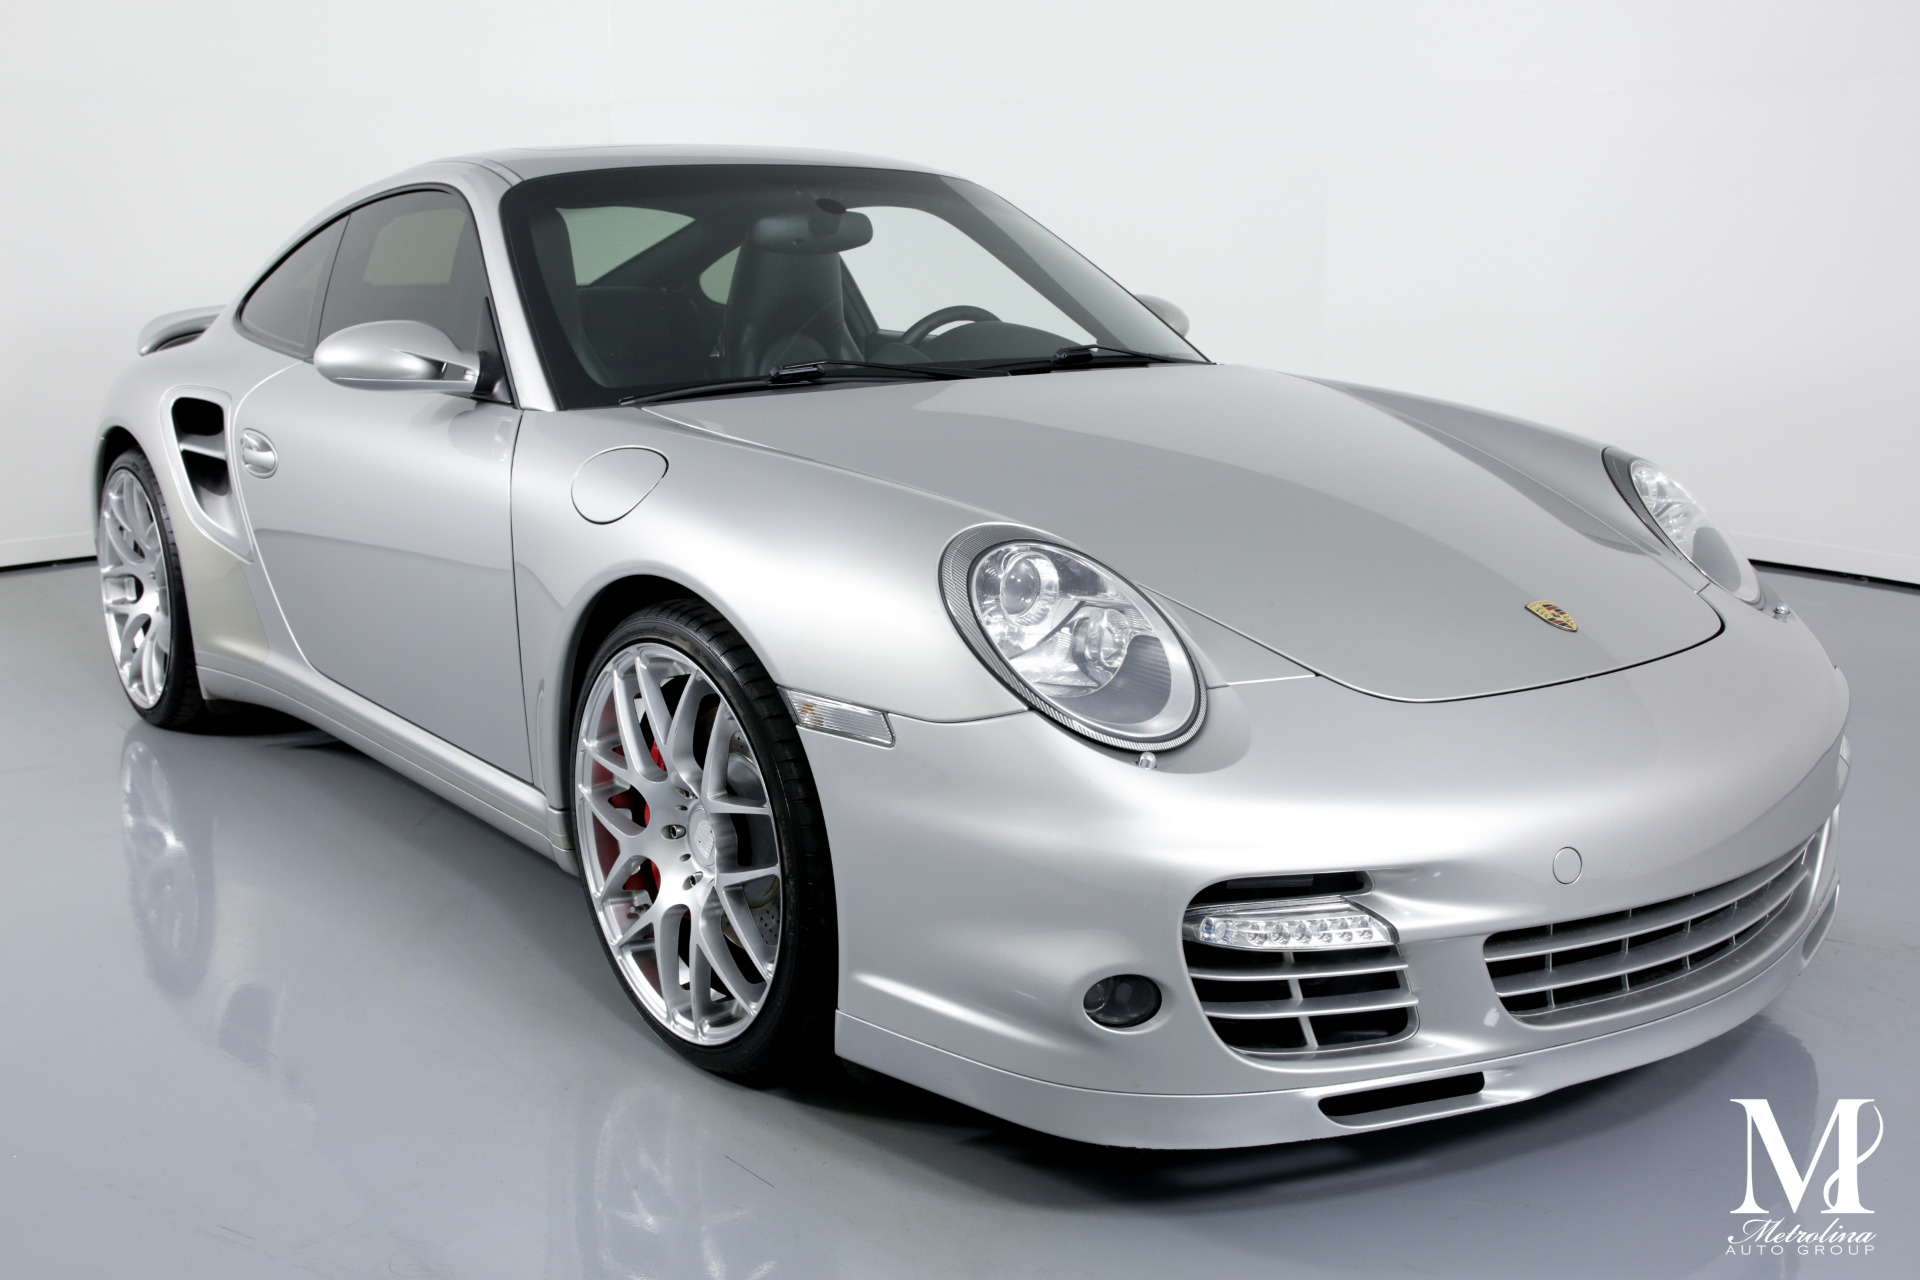 Used 2007 Porsche 911 Turbo for sale $74,996 at Metrolina Auto Group in Charlotte NC 28217 - 2